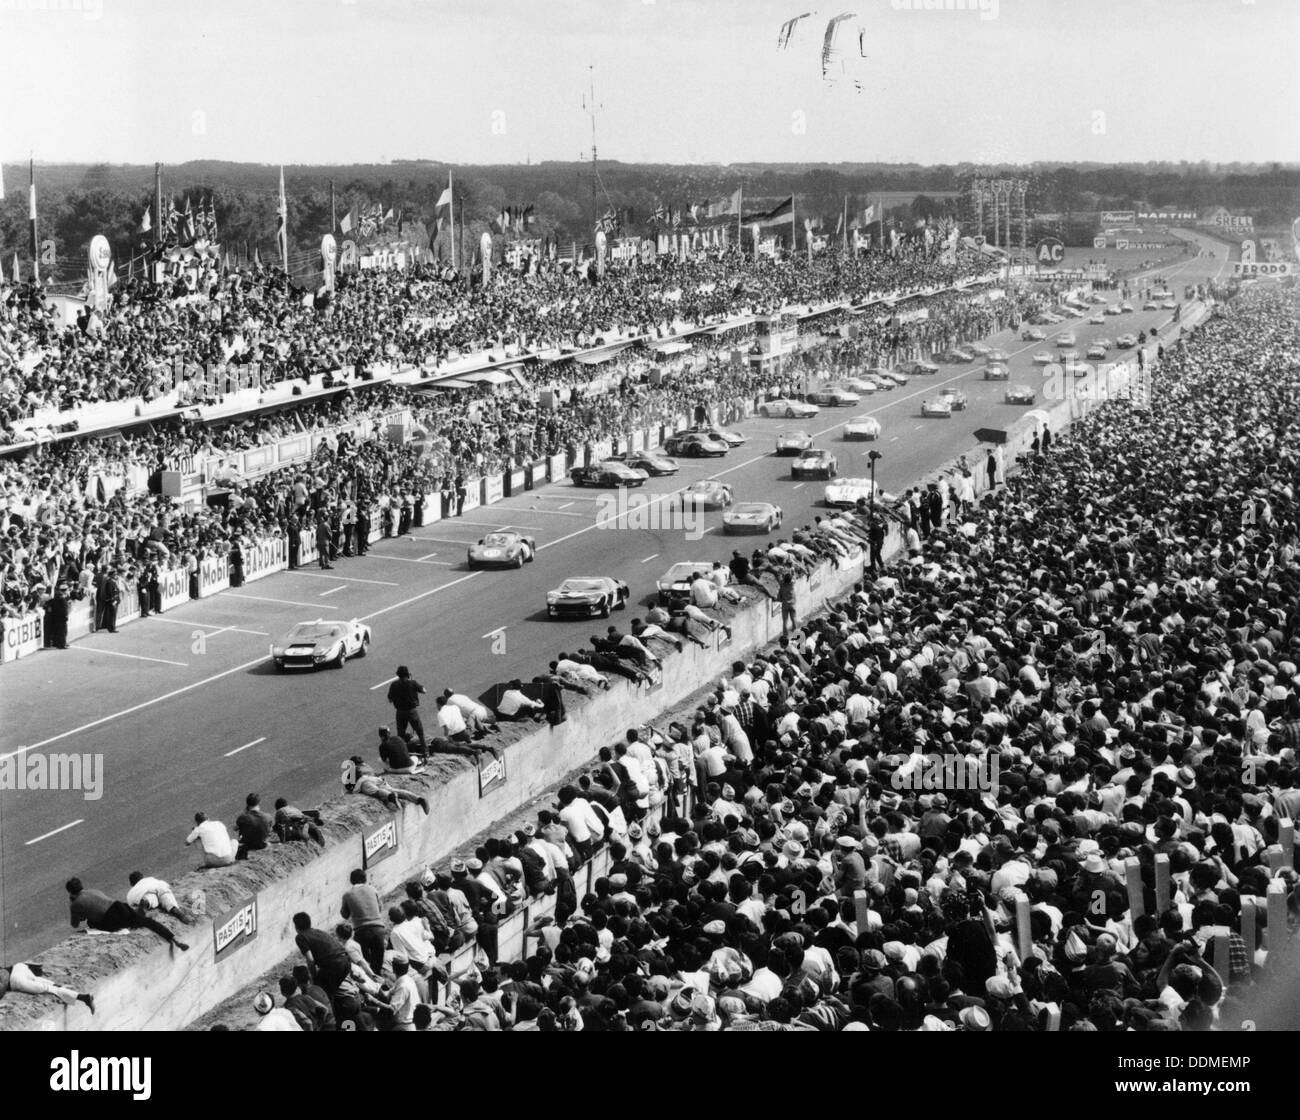 Start of the Le Mans 24 Hour race, France, 1965. - Stock Image